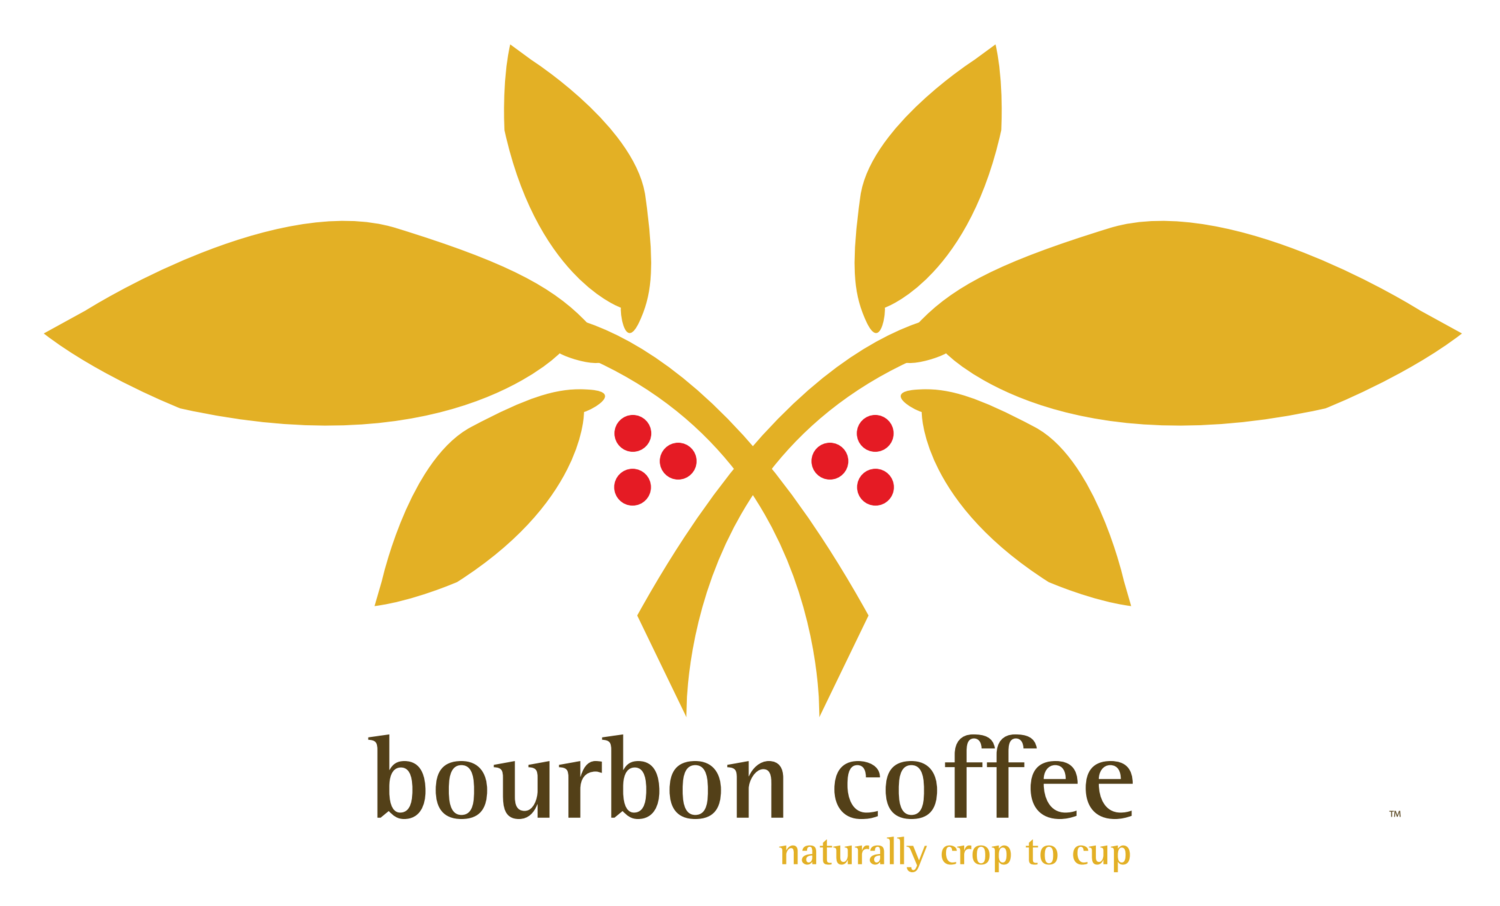 bourbon coffee food preparer job description food service worker resume - Food Preparer Job Description